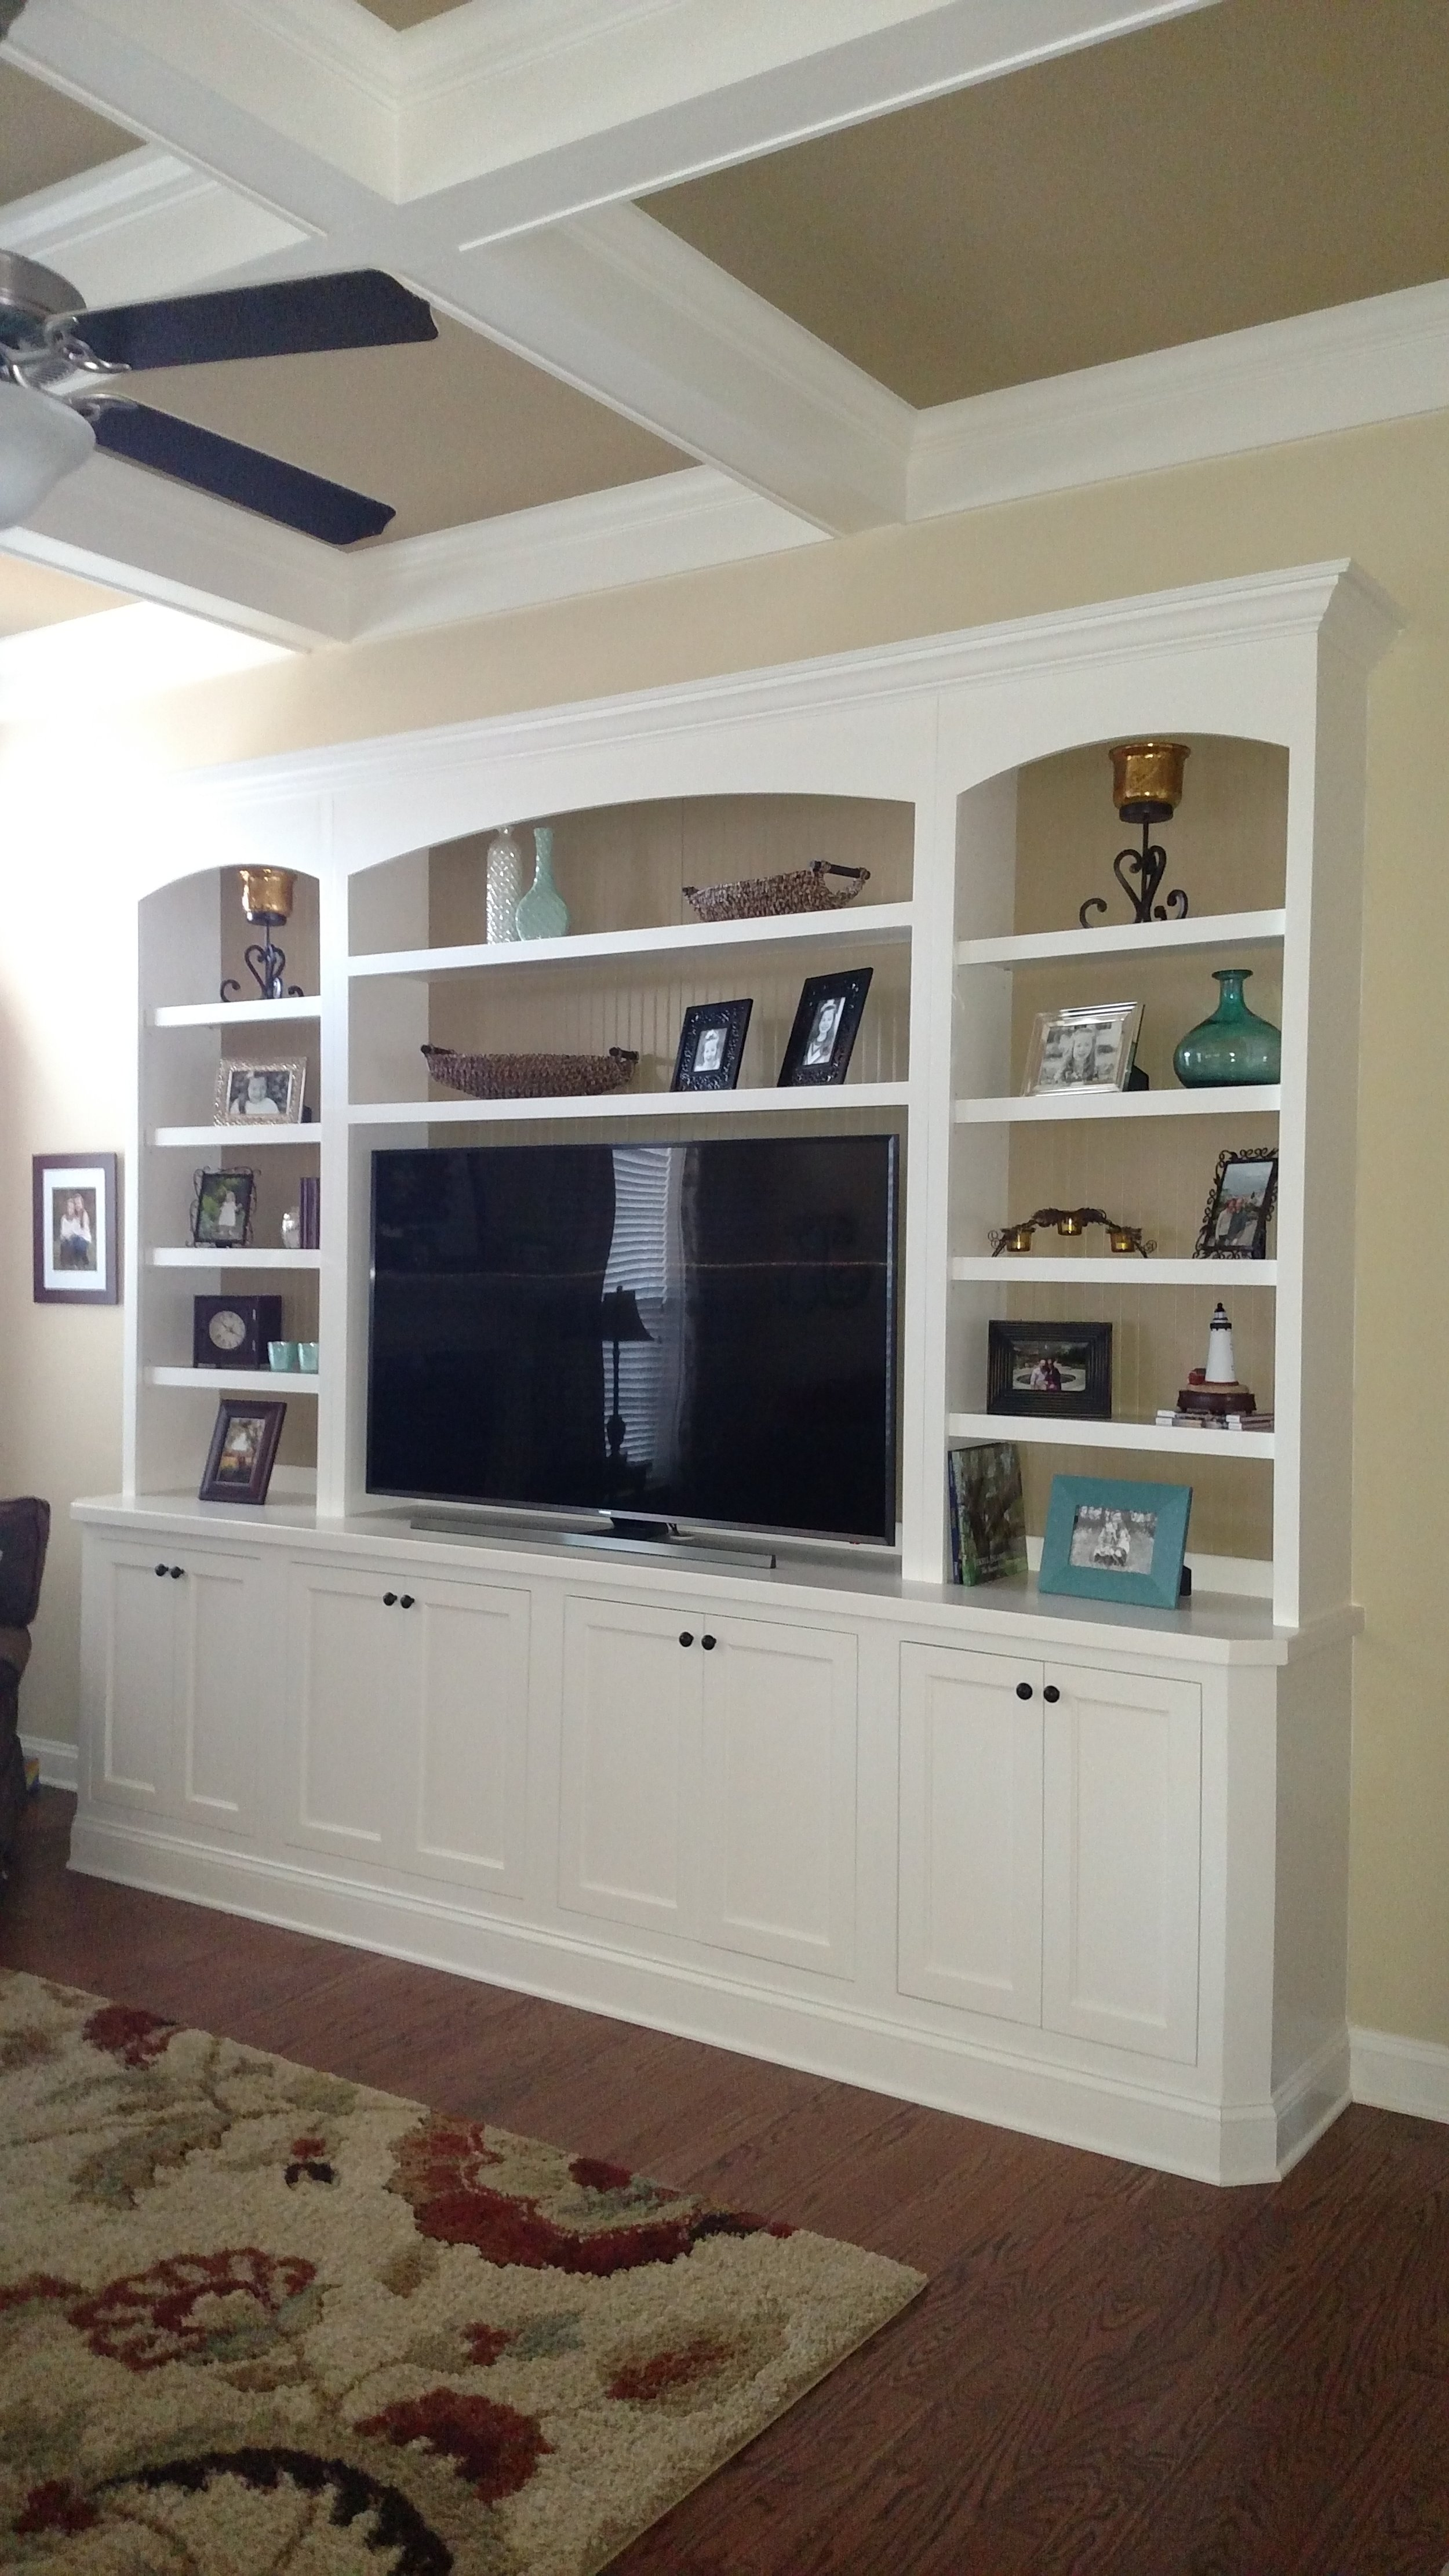 Built-In with Clipped Corners, Beadboard & Accent Backer, Inset Shaker Doors, and Arches